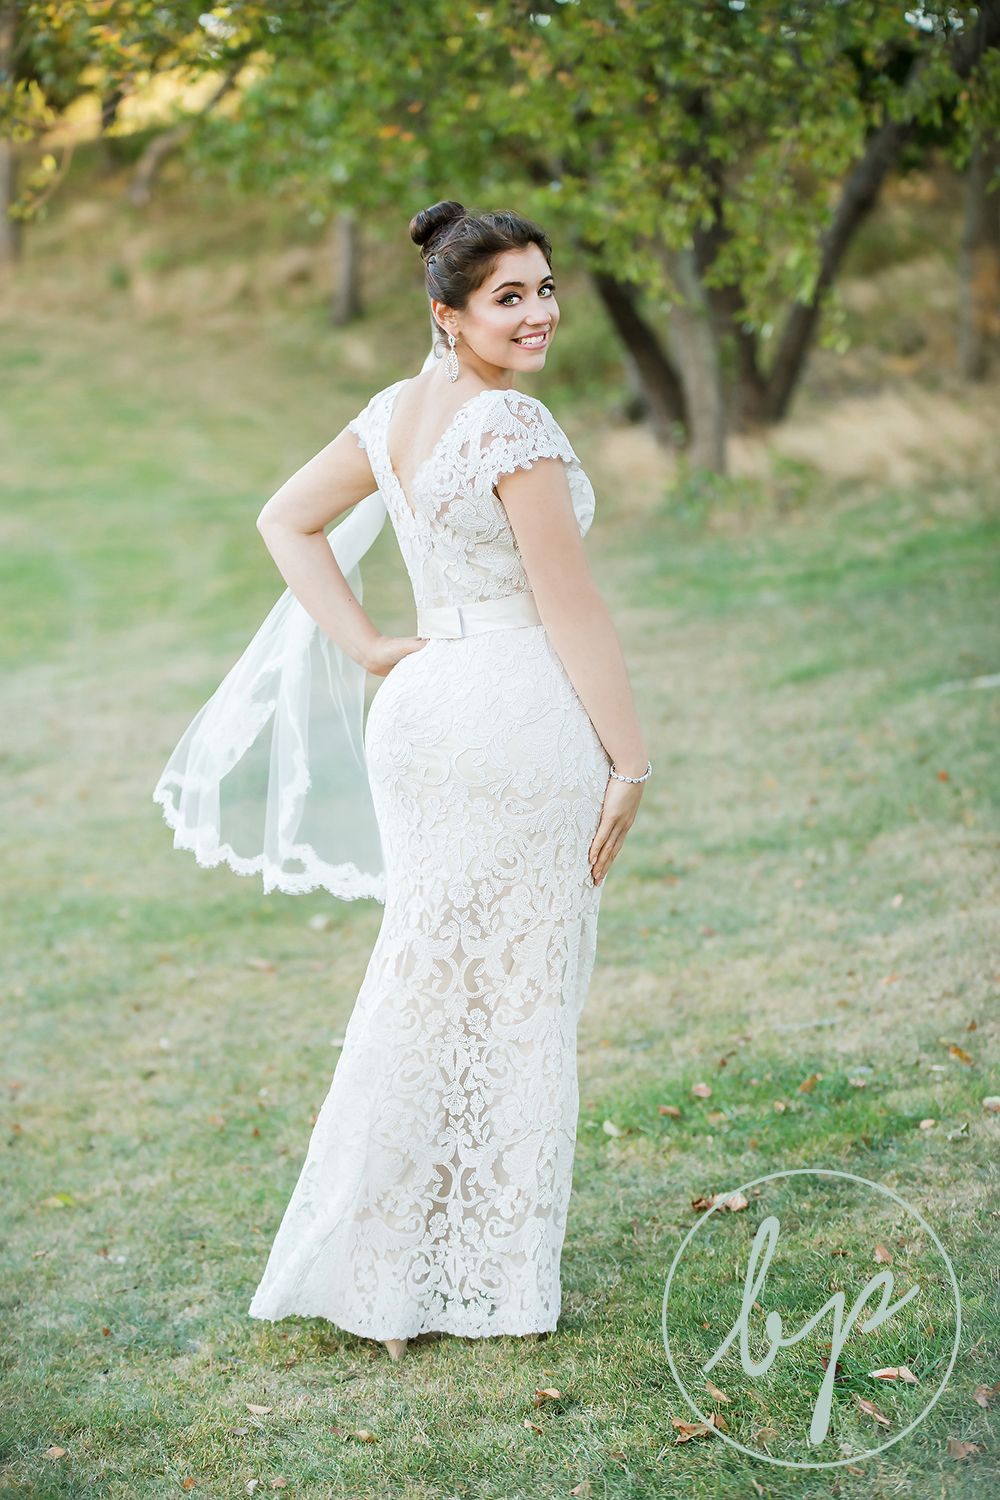 Country dresses for weddings  Bombshell bride Country Club wedding vintage lace dress